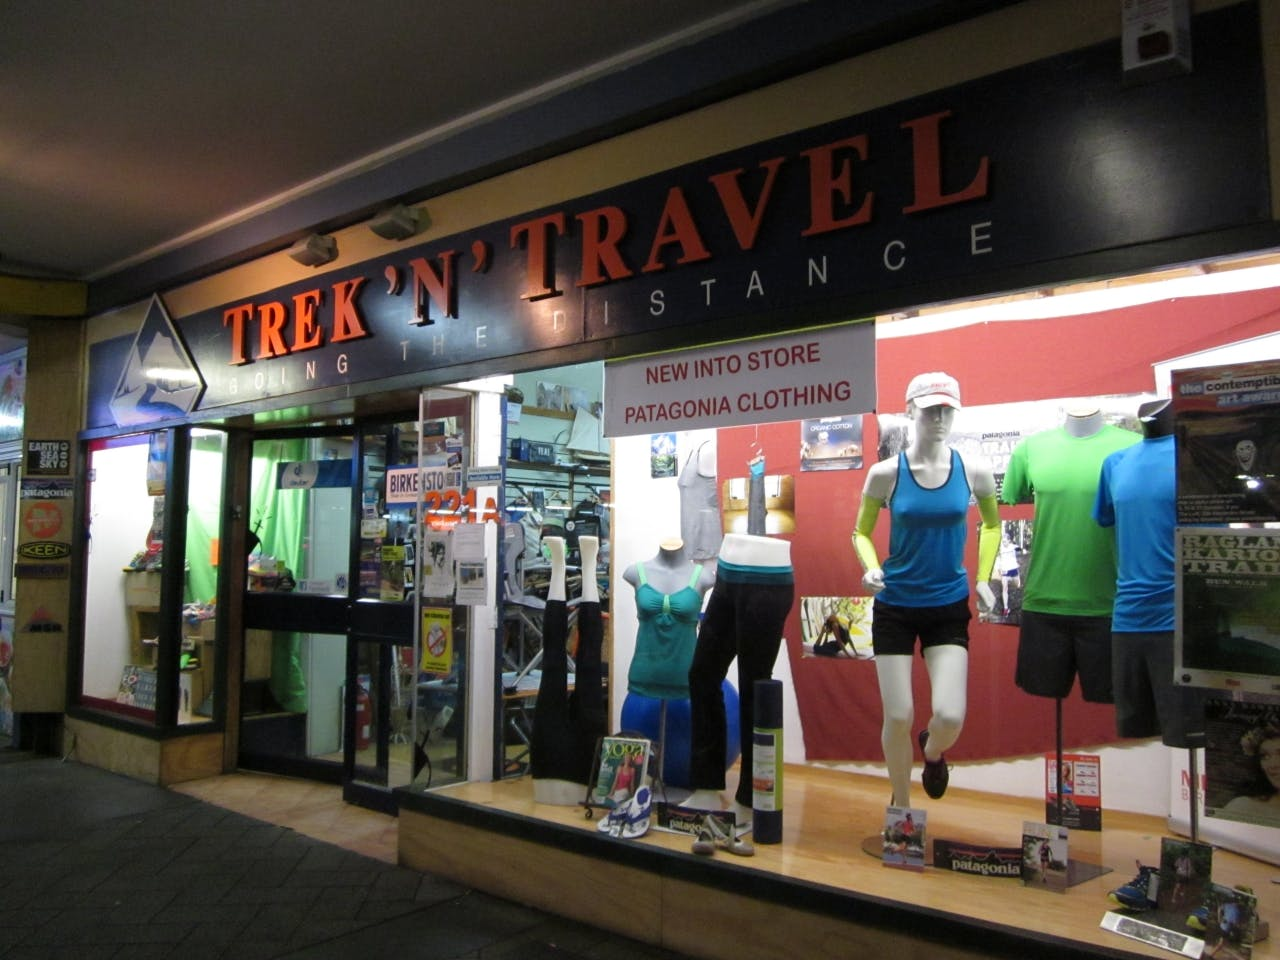 Hamilton retailer Trek 'n' Travel stocks a variety of brands but owner Colin Hancock says the recession has made things tough.